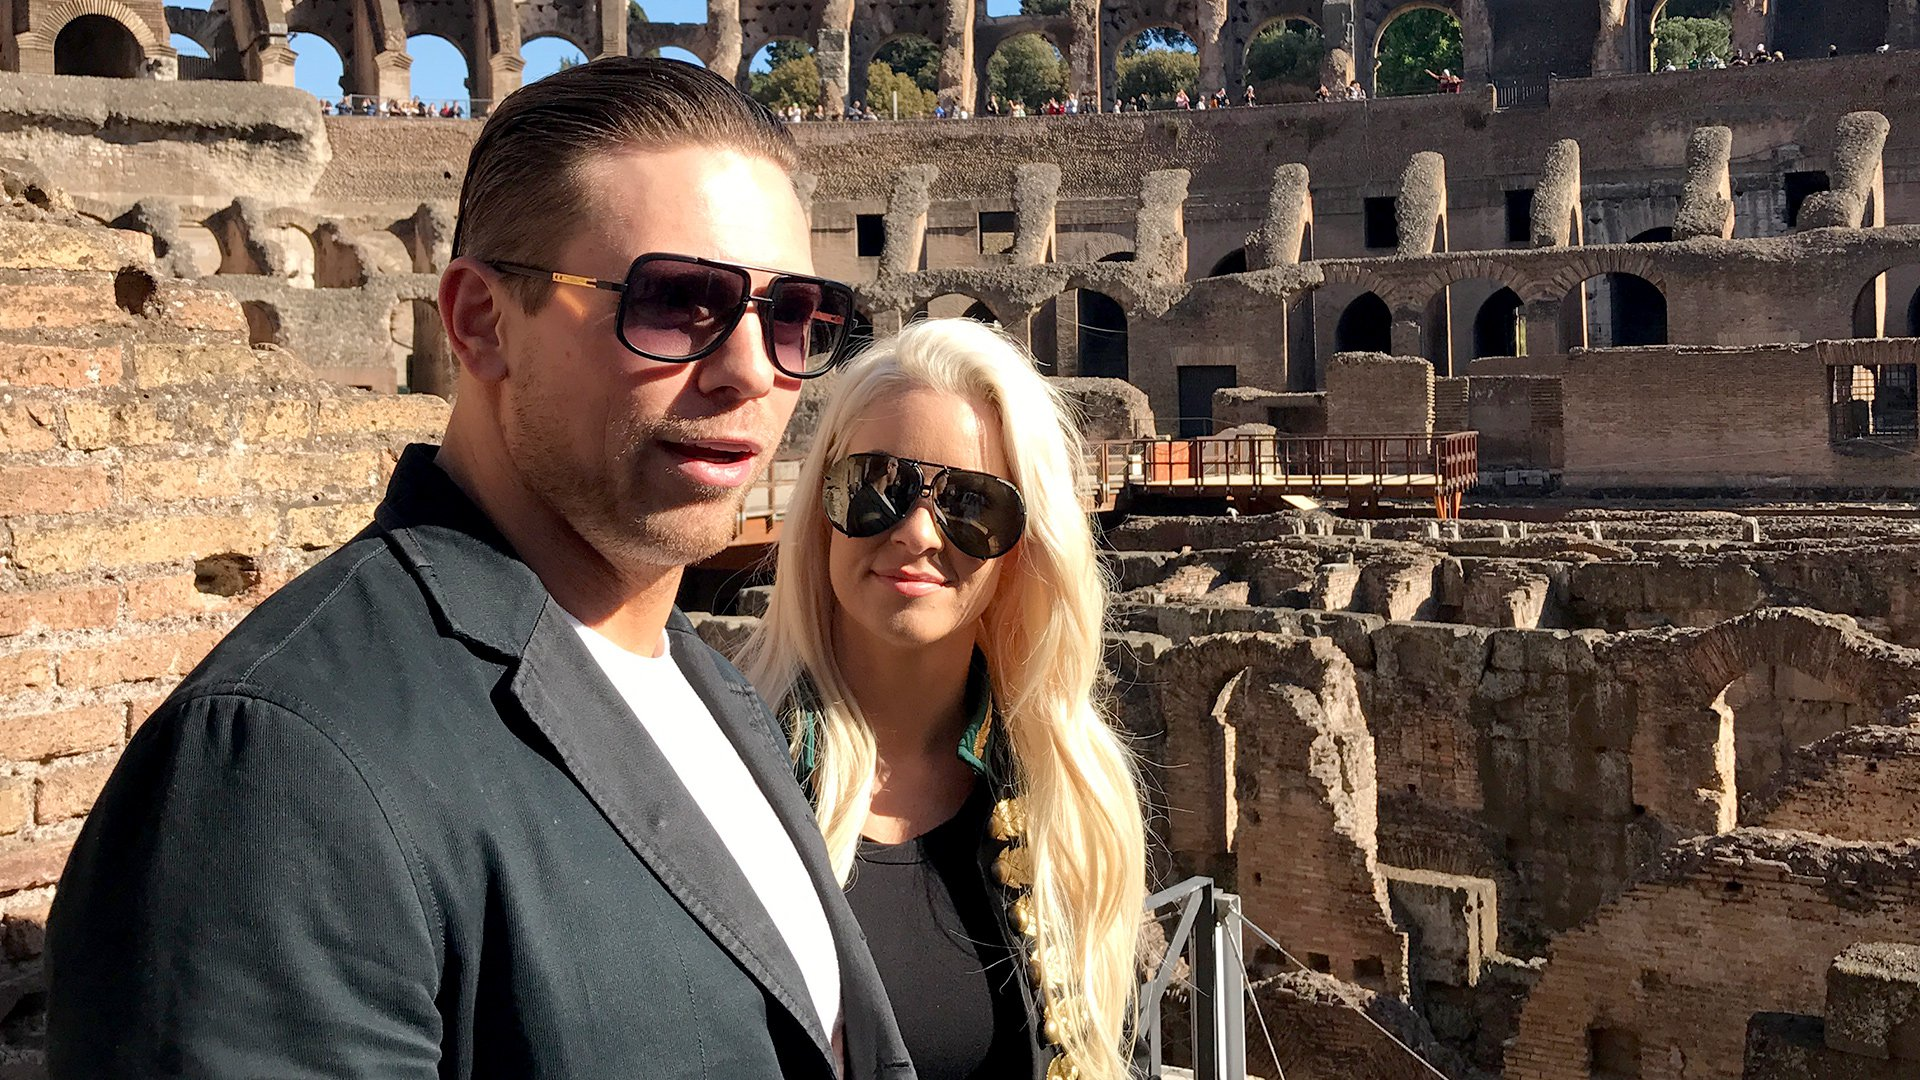 I - Central de Noticias Miz_maryse_rome_colosseum_05022017--3a1386509daeb490b25fc3ba2f4be9fc